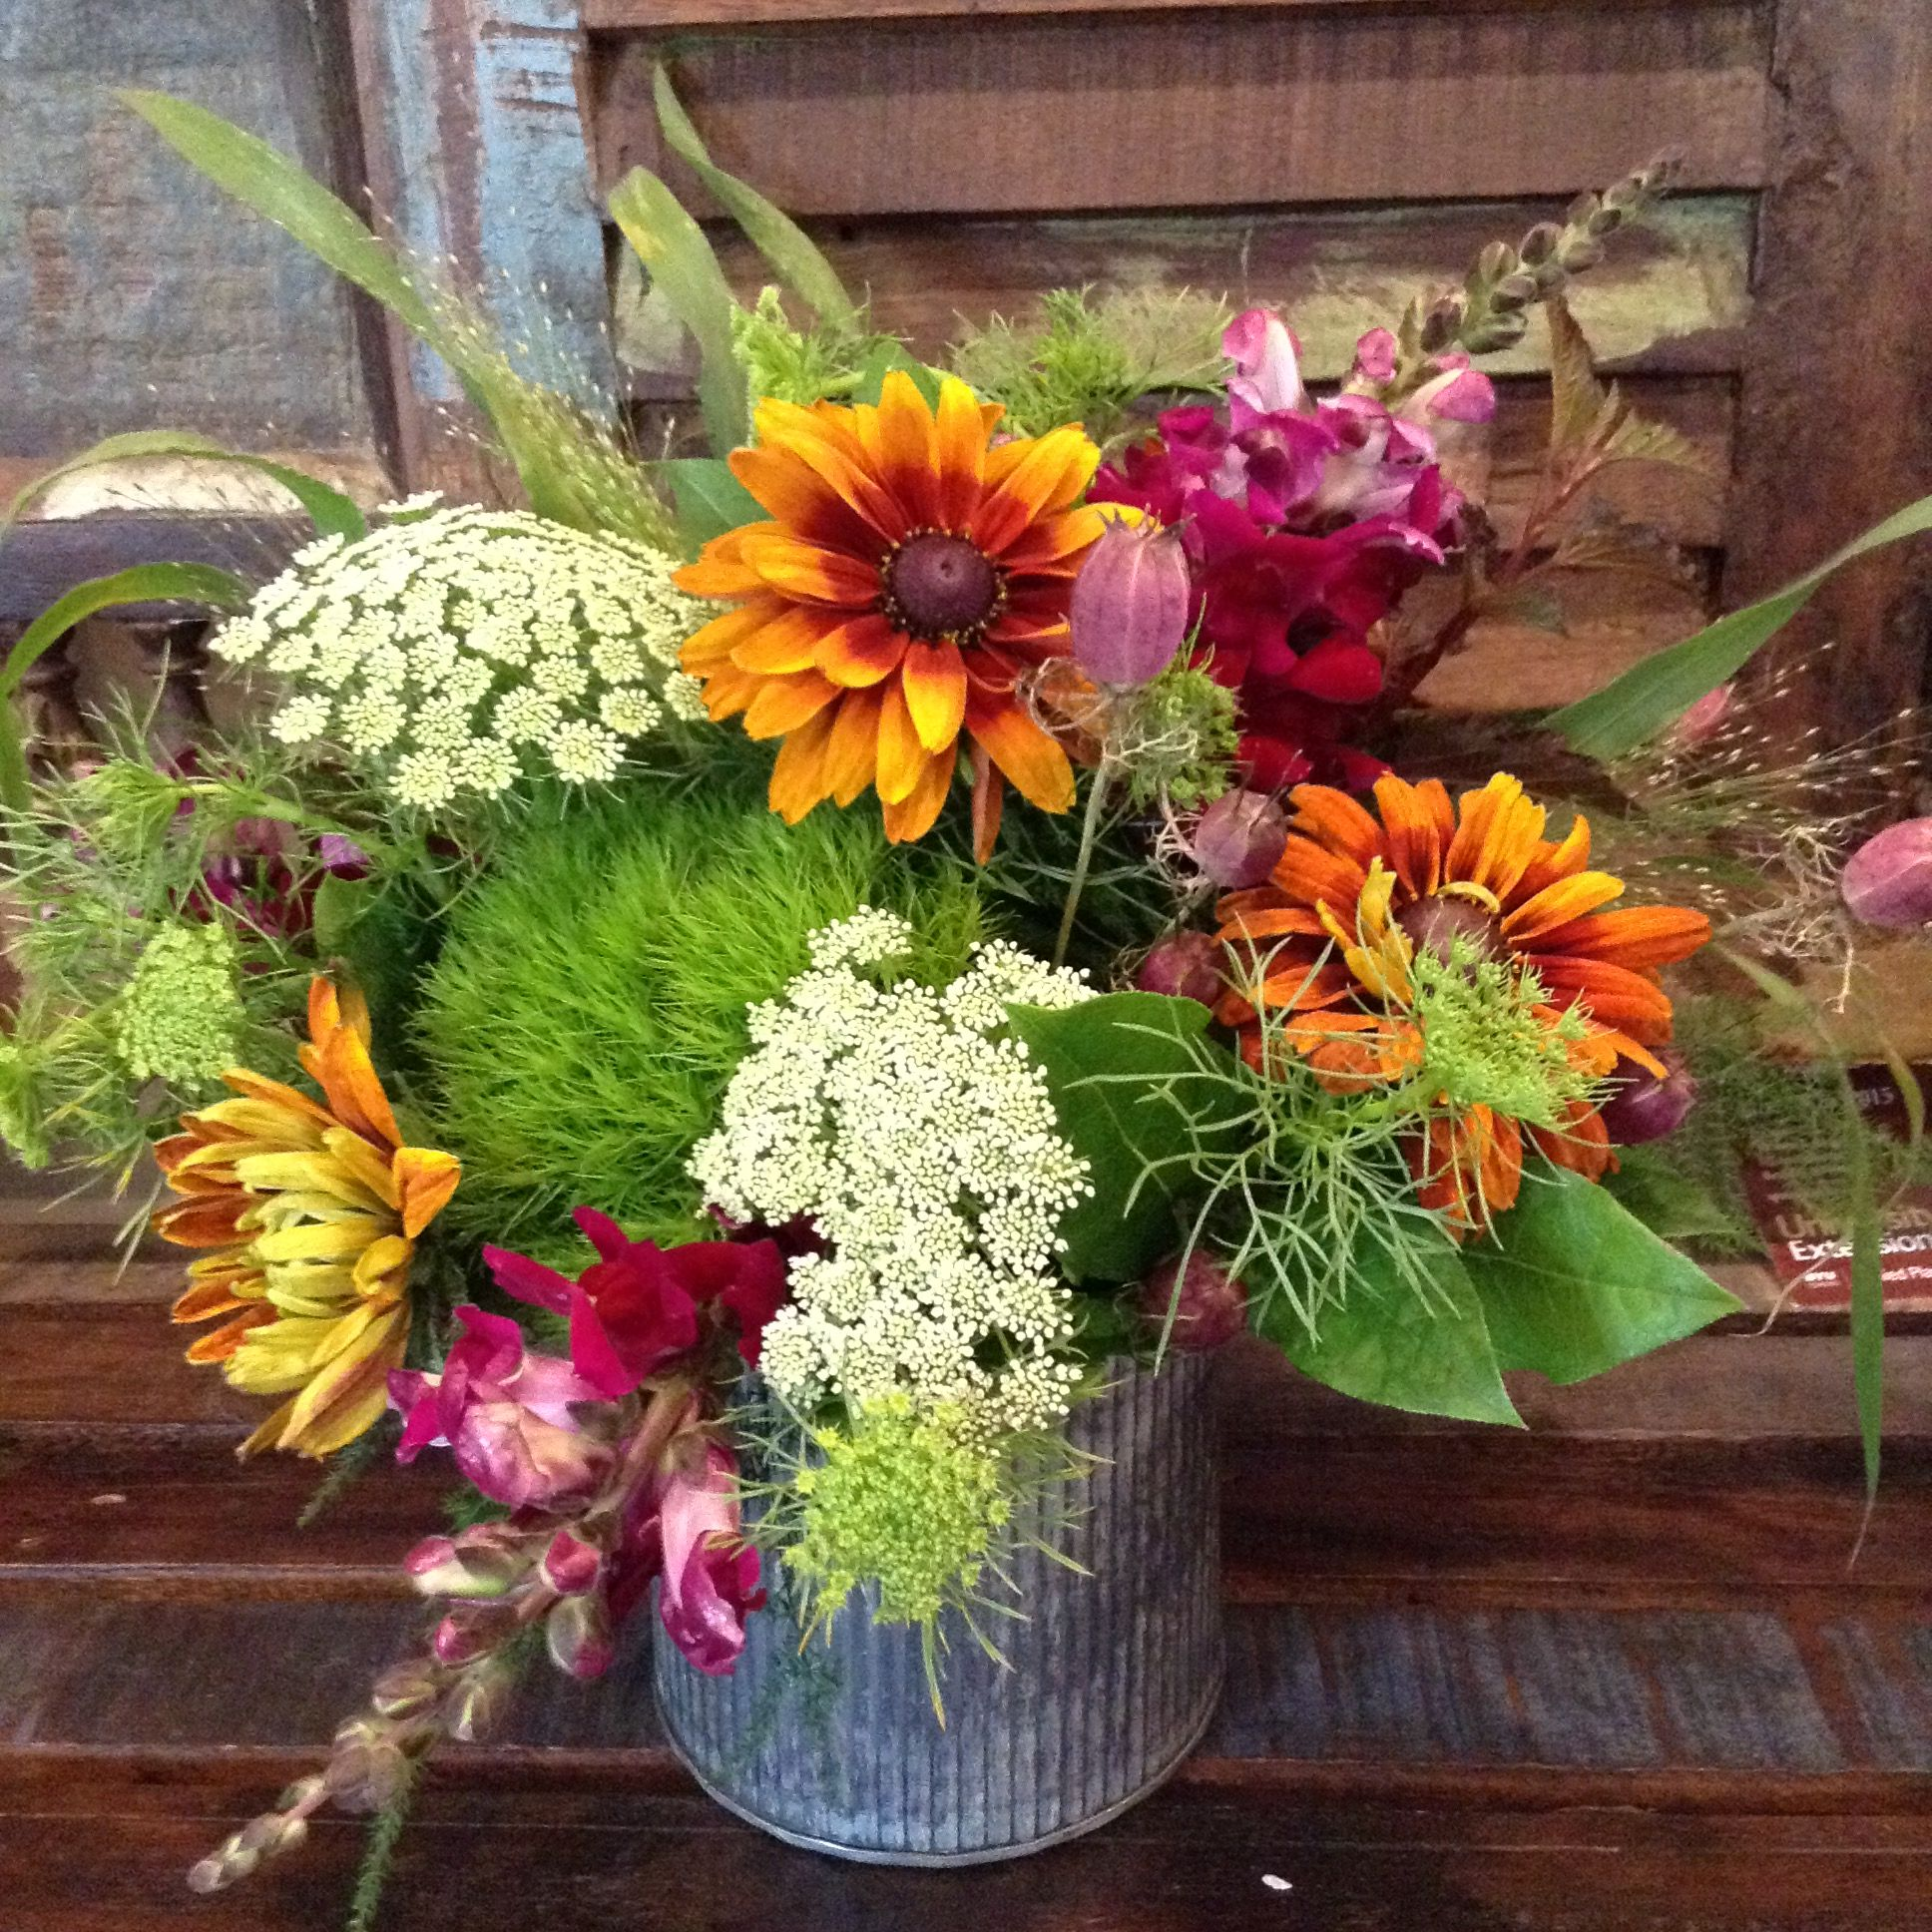 locally grown chocolate susans, snaps and queen anne's lace add to the rustic charm of this table arrangement